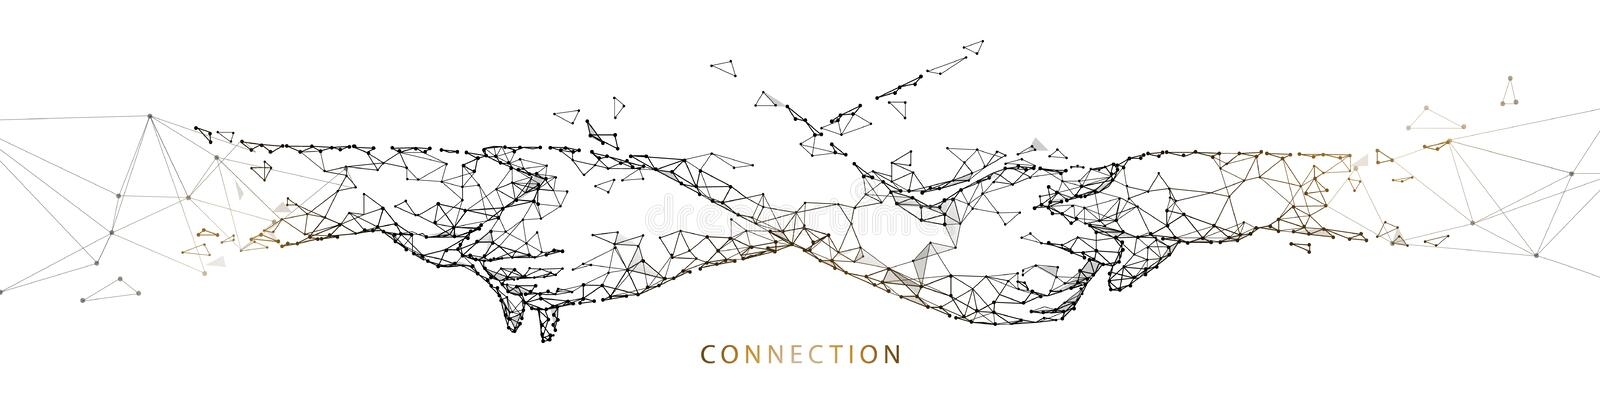 Hands touching together. teamwork, connection concept. lines, triangles and particle style design vector illustration